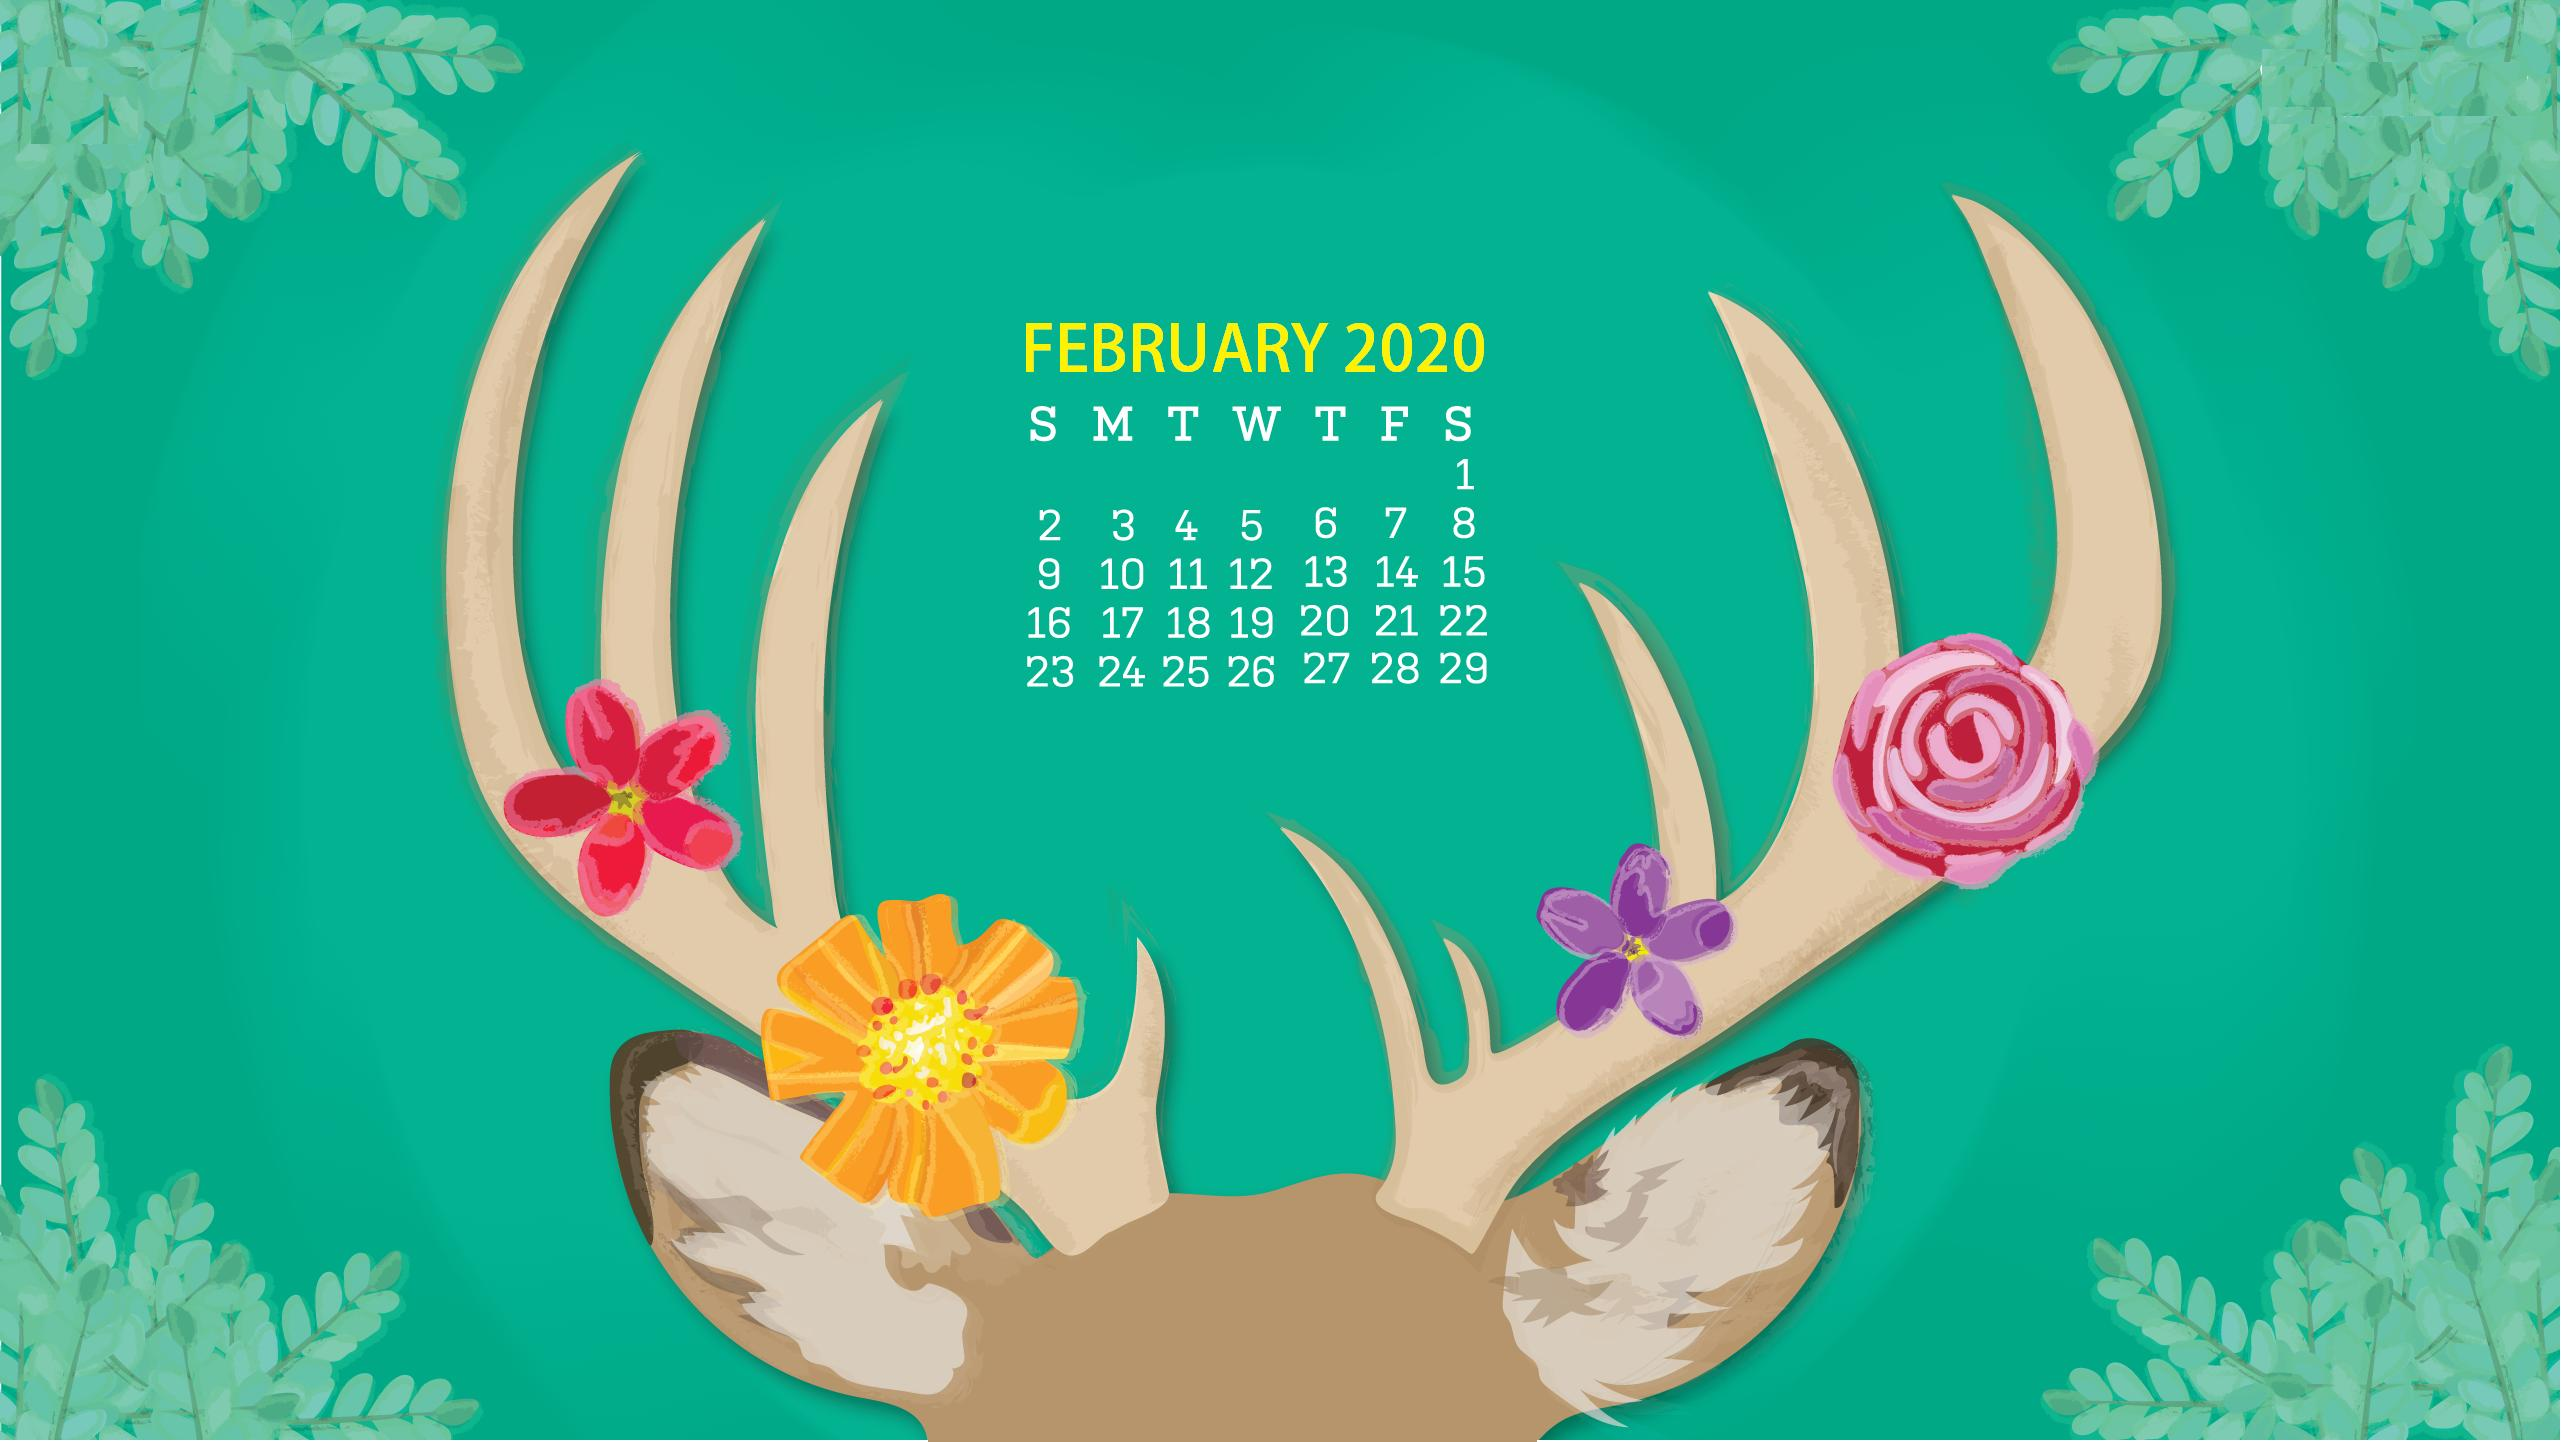 February 2020 Calendar Wallpapers   Top February 2020 2566x1442